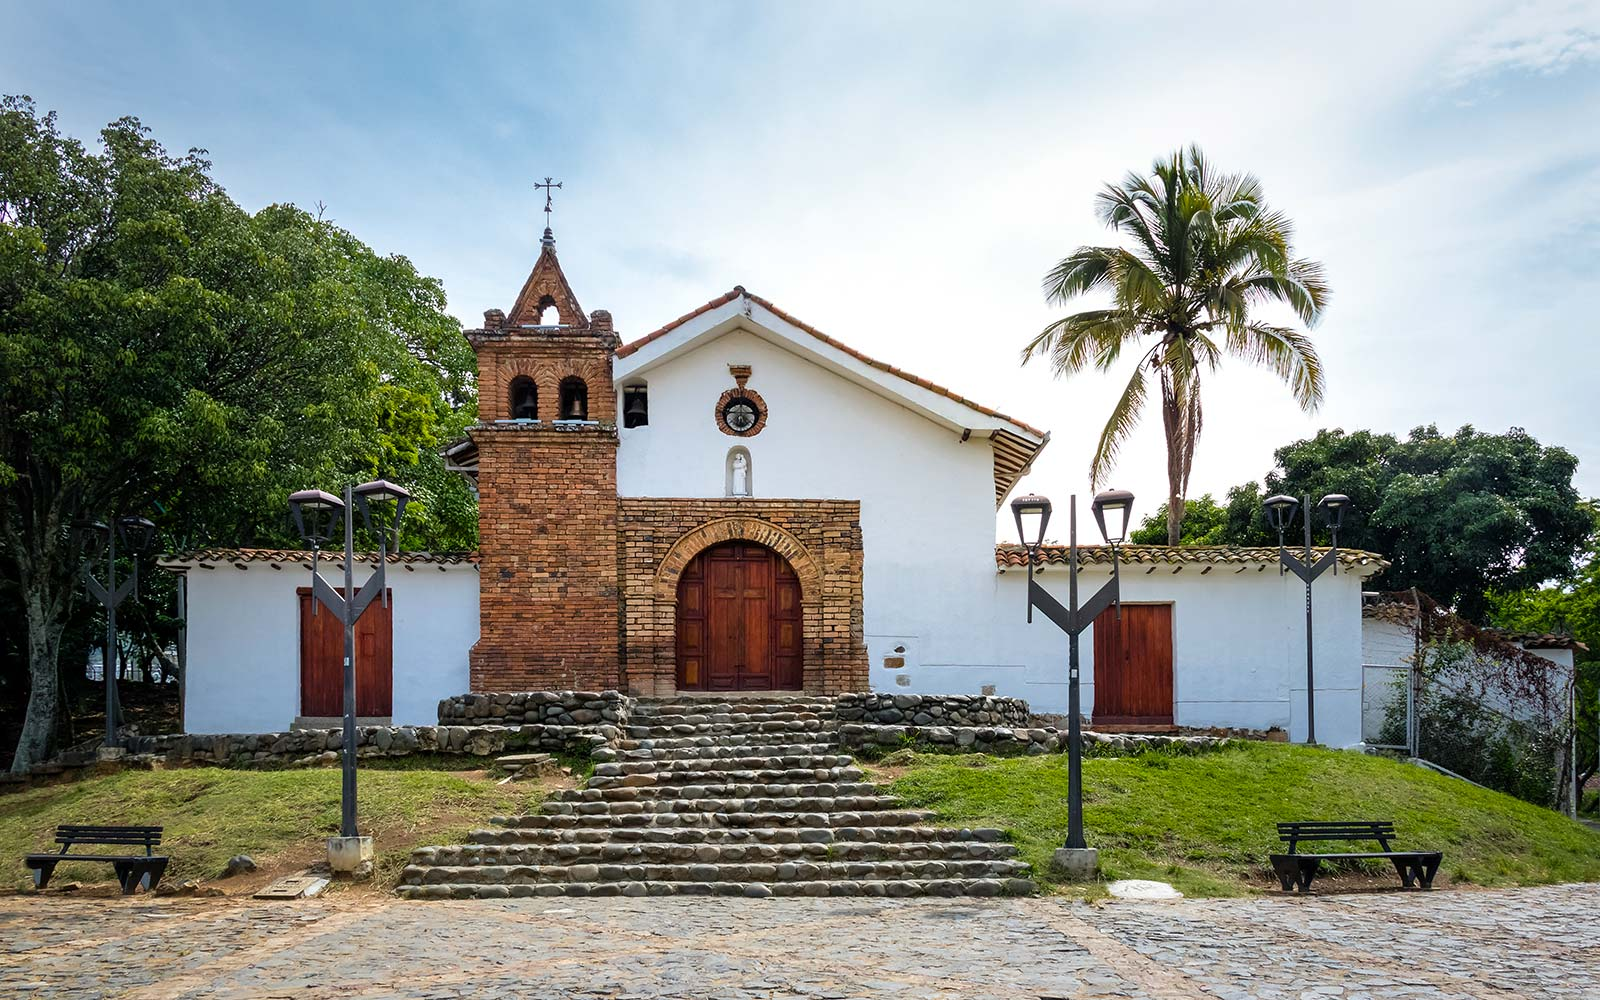 San Antonio Church Cali Colombia Style Travel Fashion Guide Barrio San Antonio